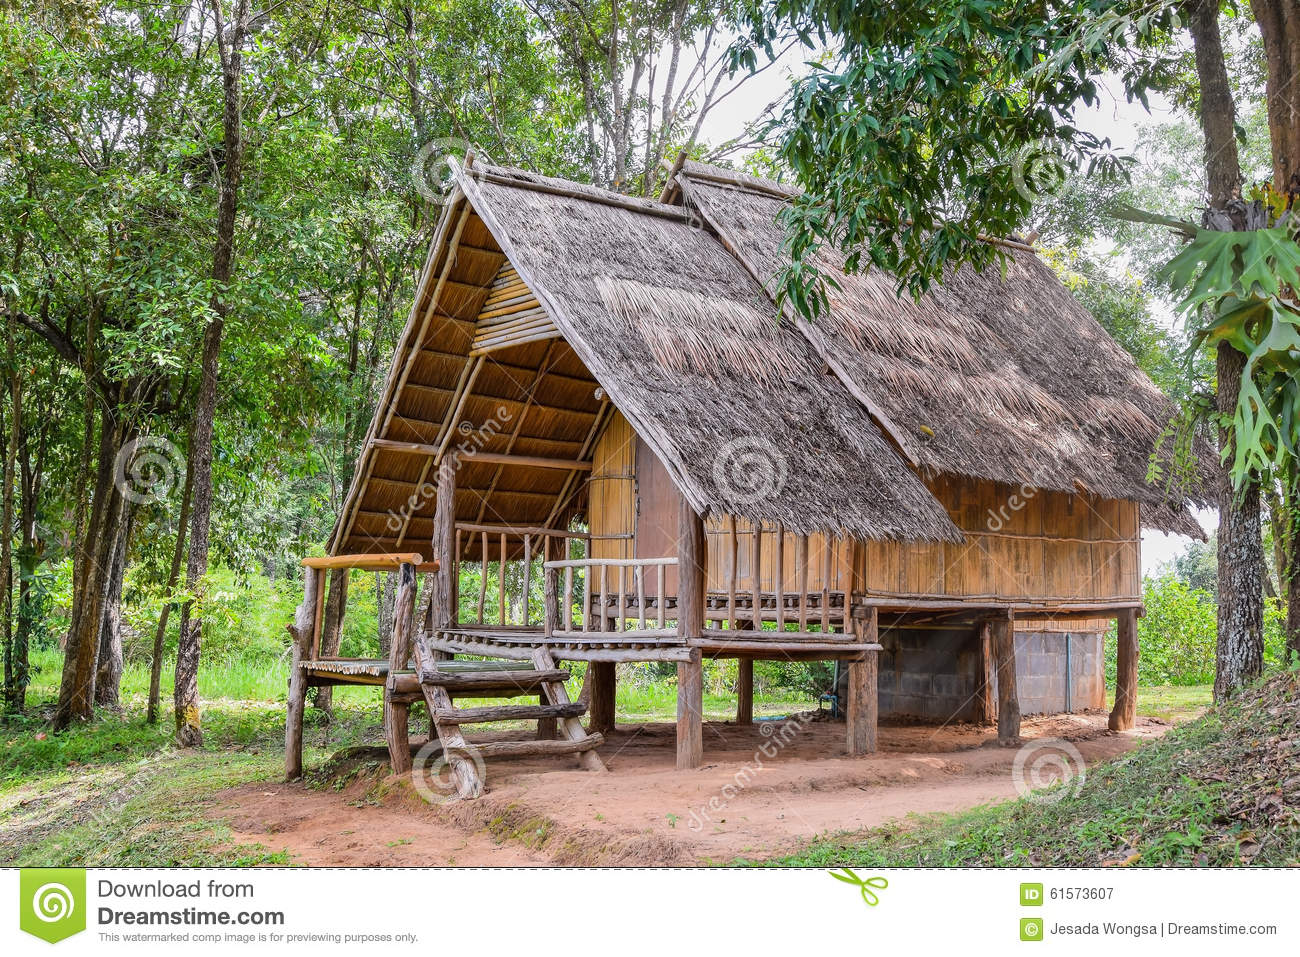 House made of natural materials in the countryside stock image image 61573607 - Houses made from natural materials ...